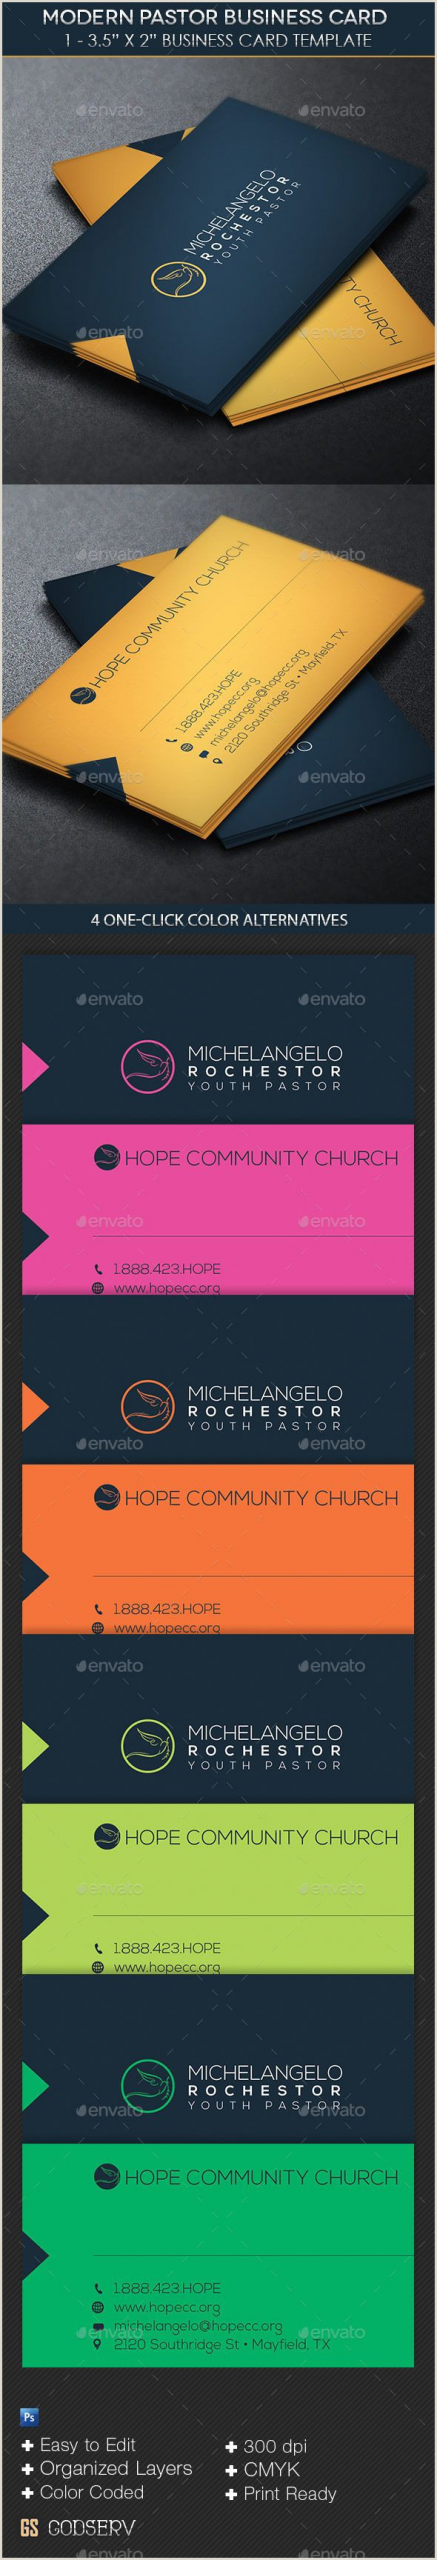 Unique Business Cards Church Or Pastors Modern Pastor Business Card Template